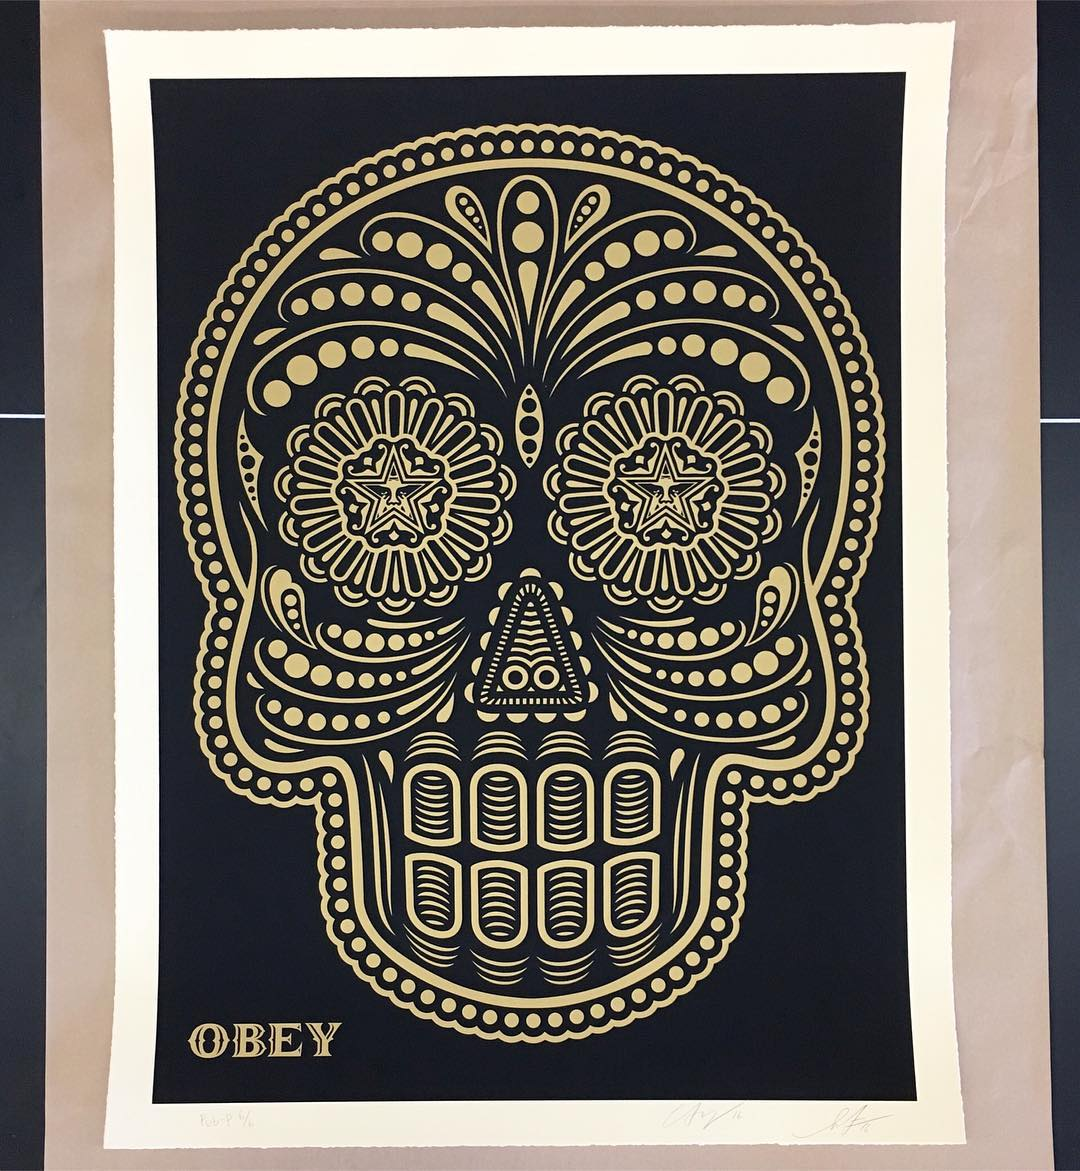 This AMAZING collaboration from @obeygiant and @ernestoyerena is available for auction tomorrow night at Amplify, B4BC's 20th Anniversary celebration! RSVP in our bio so you can take home this beautiful piece of art! #b4bcamplify